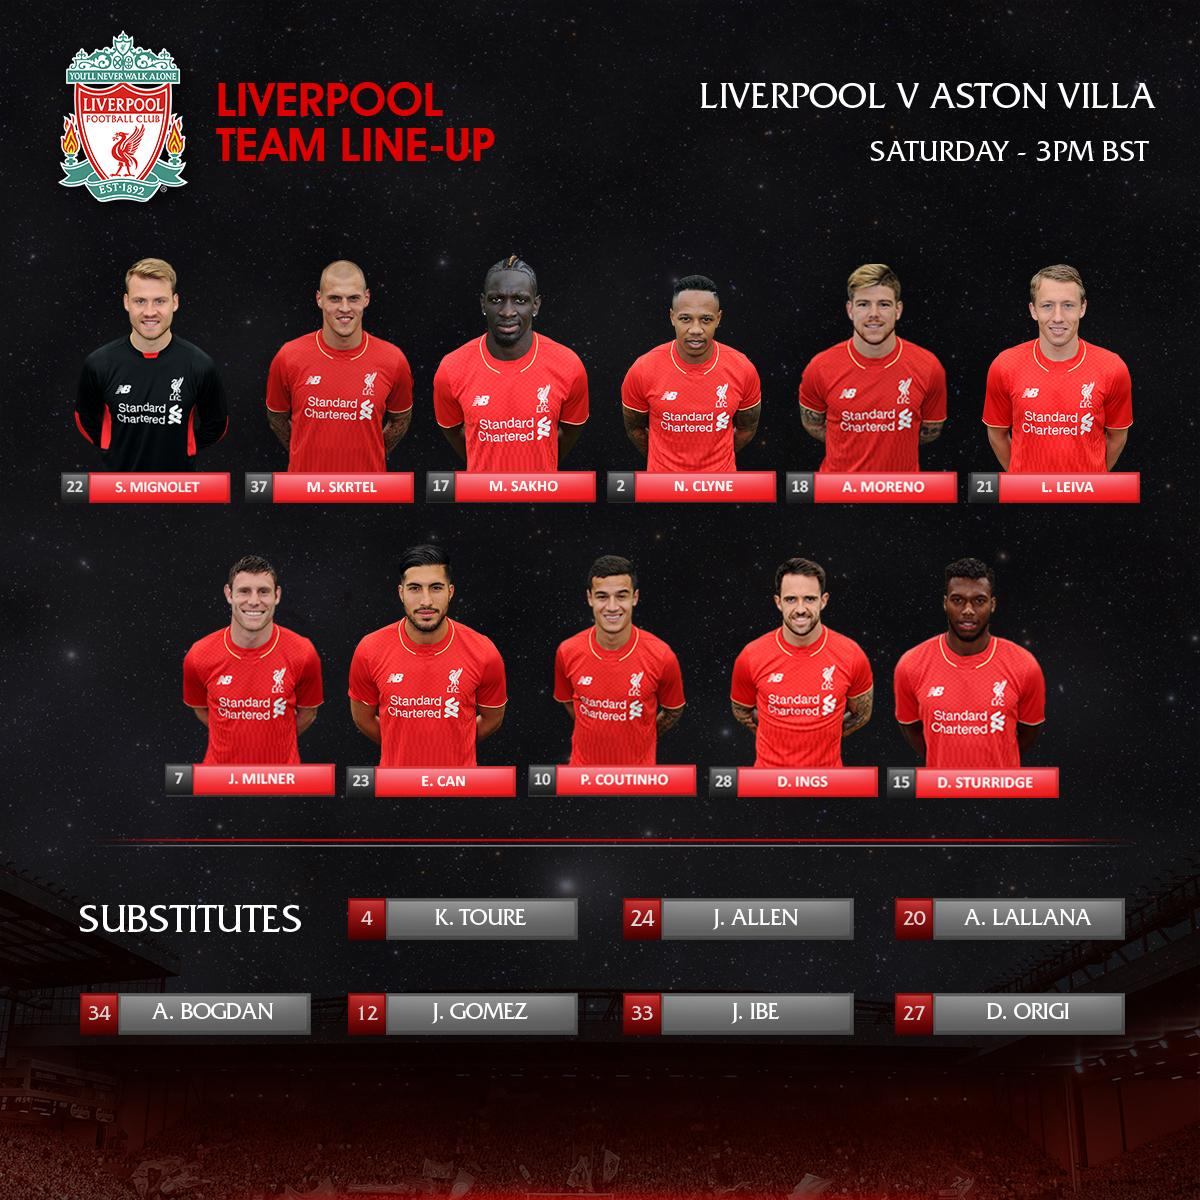 Liverpool Team News Injuries Suspensions And Line Up Vs: Premier League Team News: Liverpool Vs Aston Villa